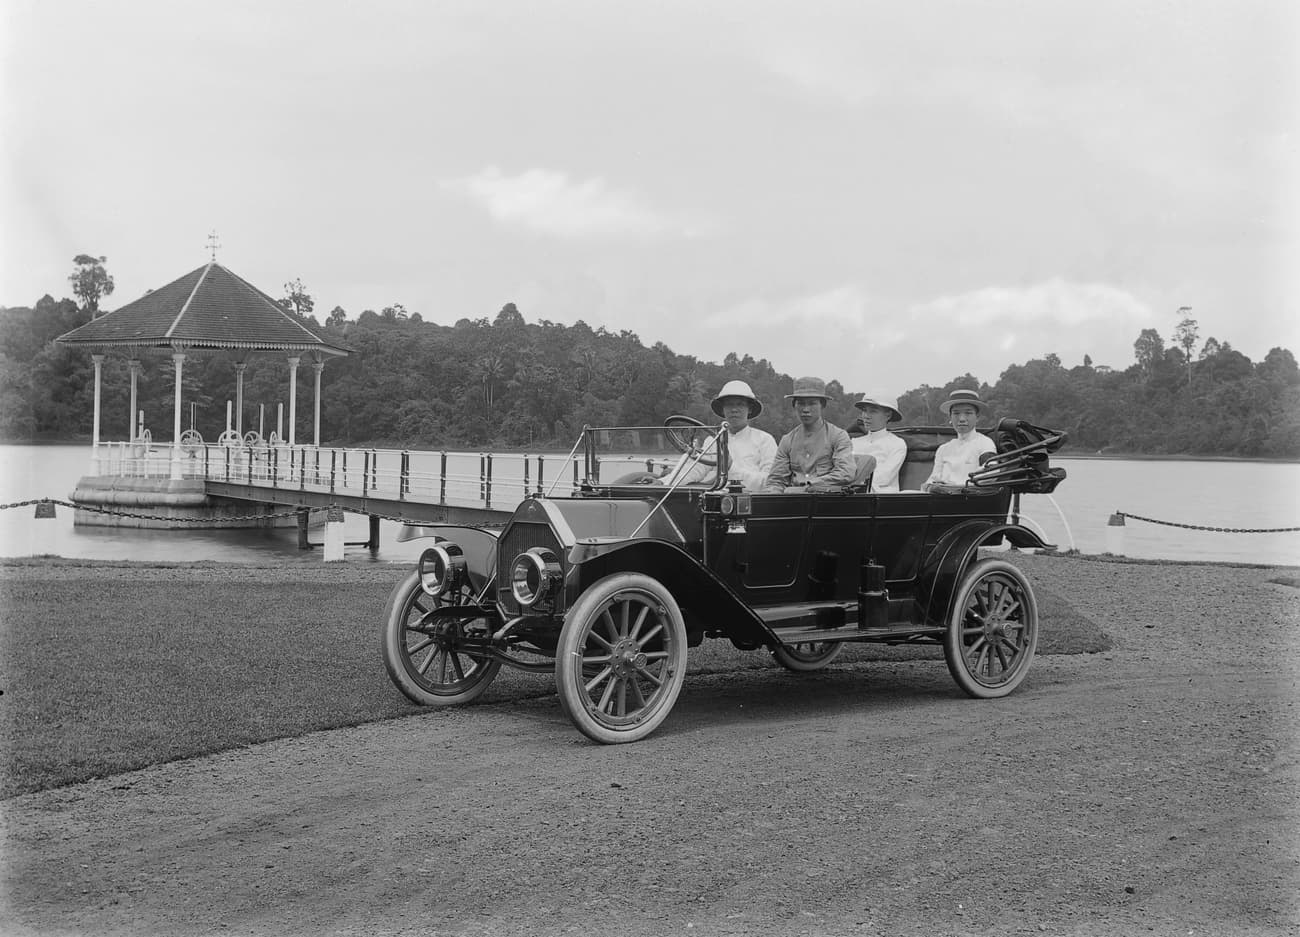 Outing by car at MacRitichie Reservoir, 1920s